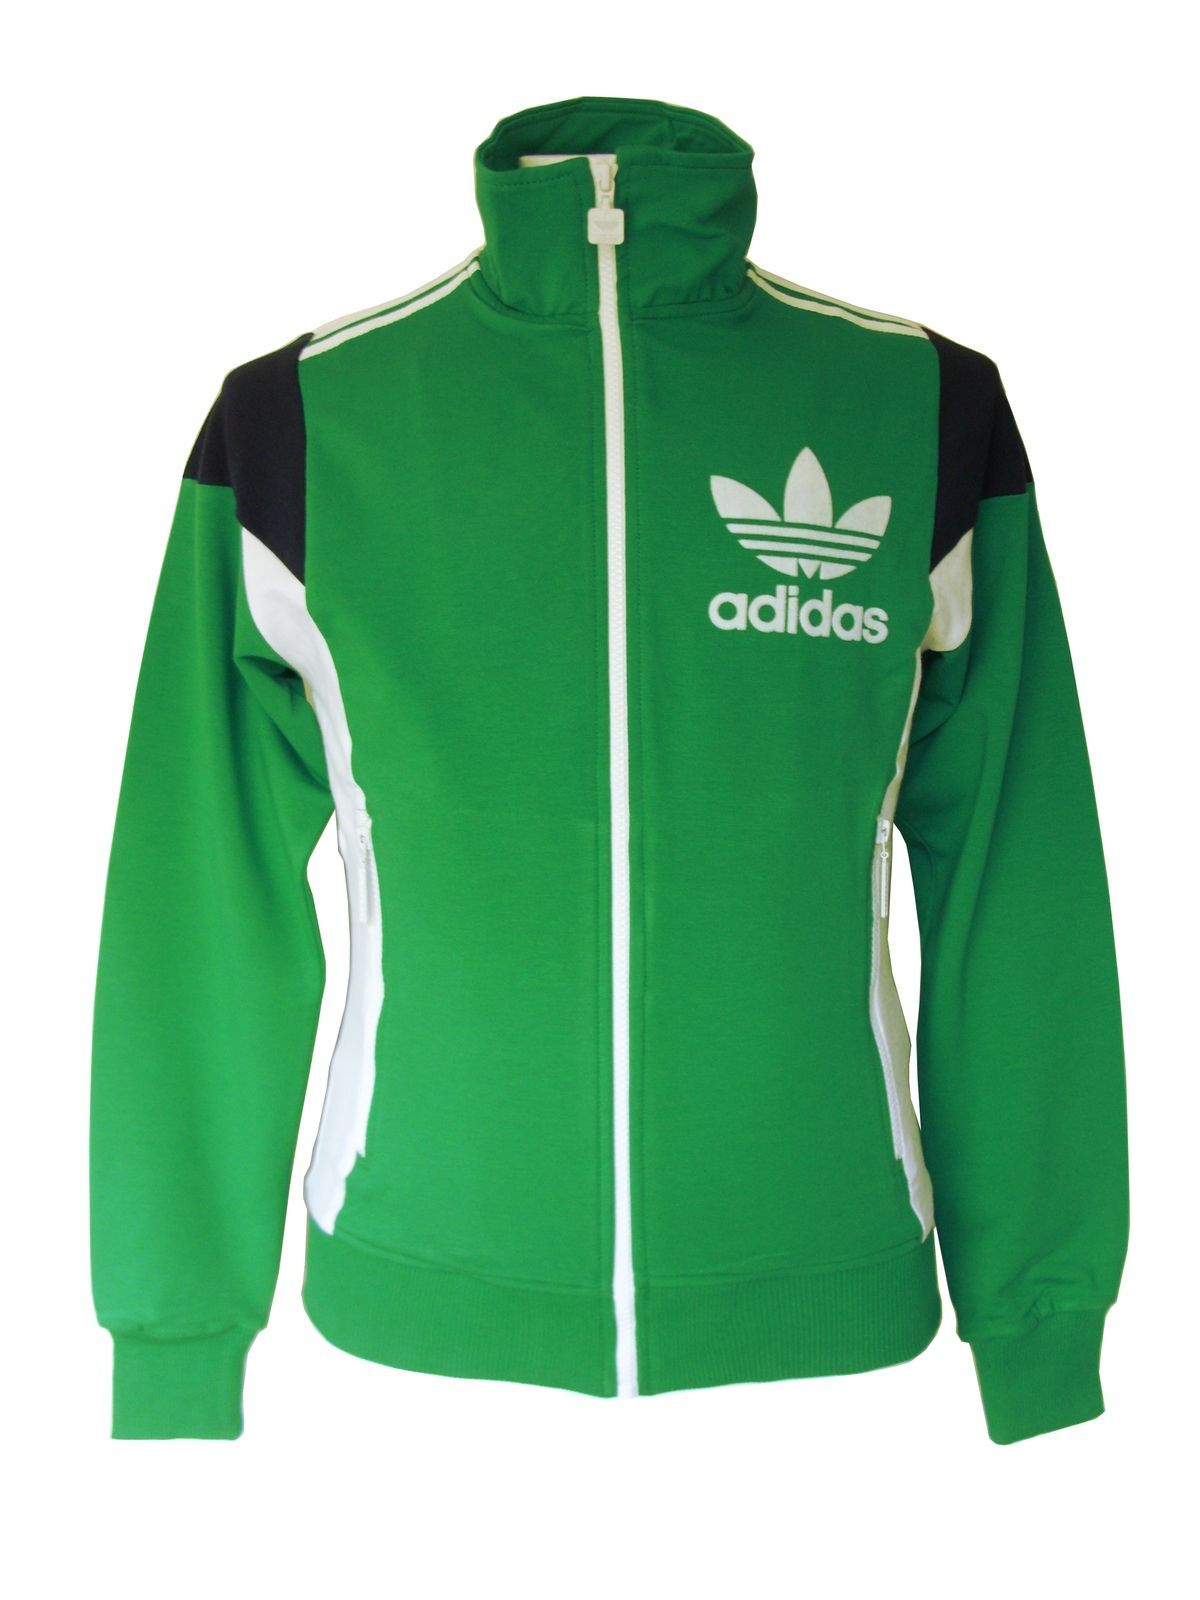 Details about ADIDAS STAR WARS DS VARSITY JACKET BASEBALL SUPER DEATH LEATHER WOOL P01685 COAT